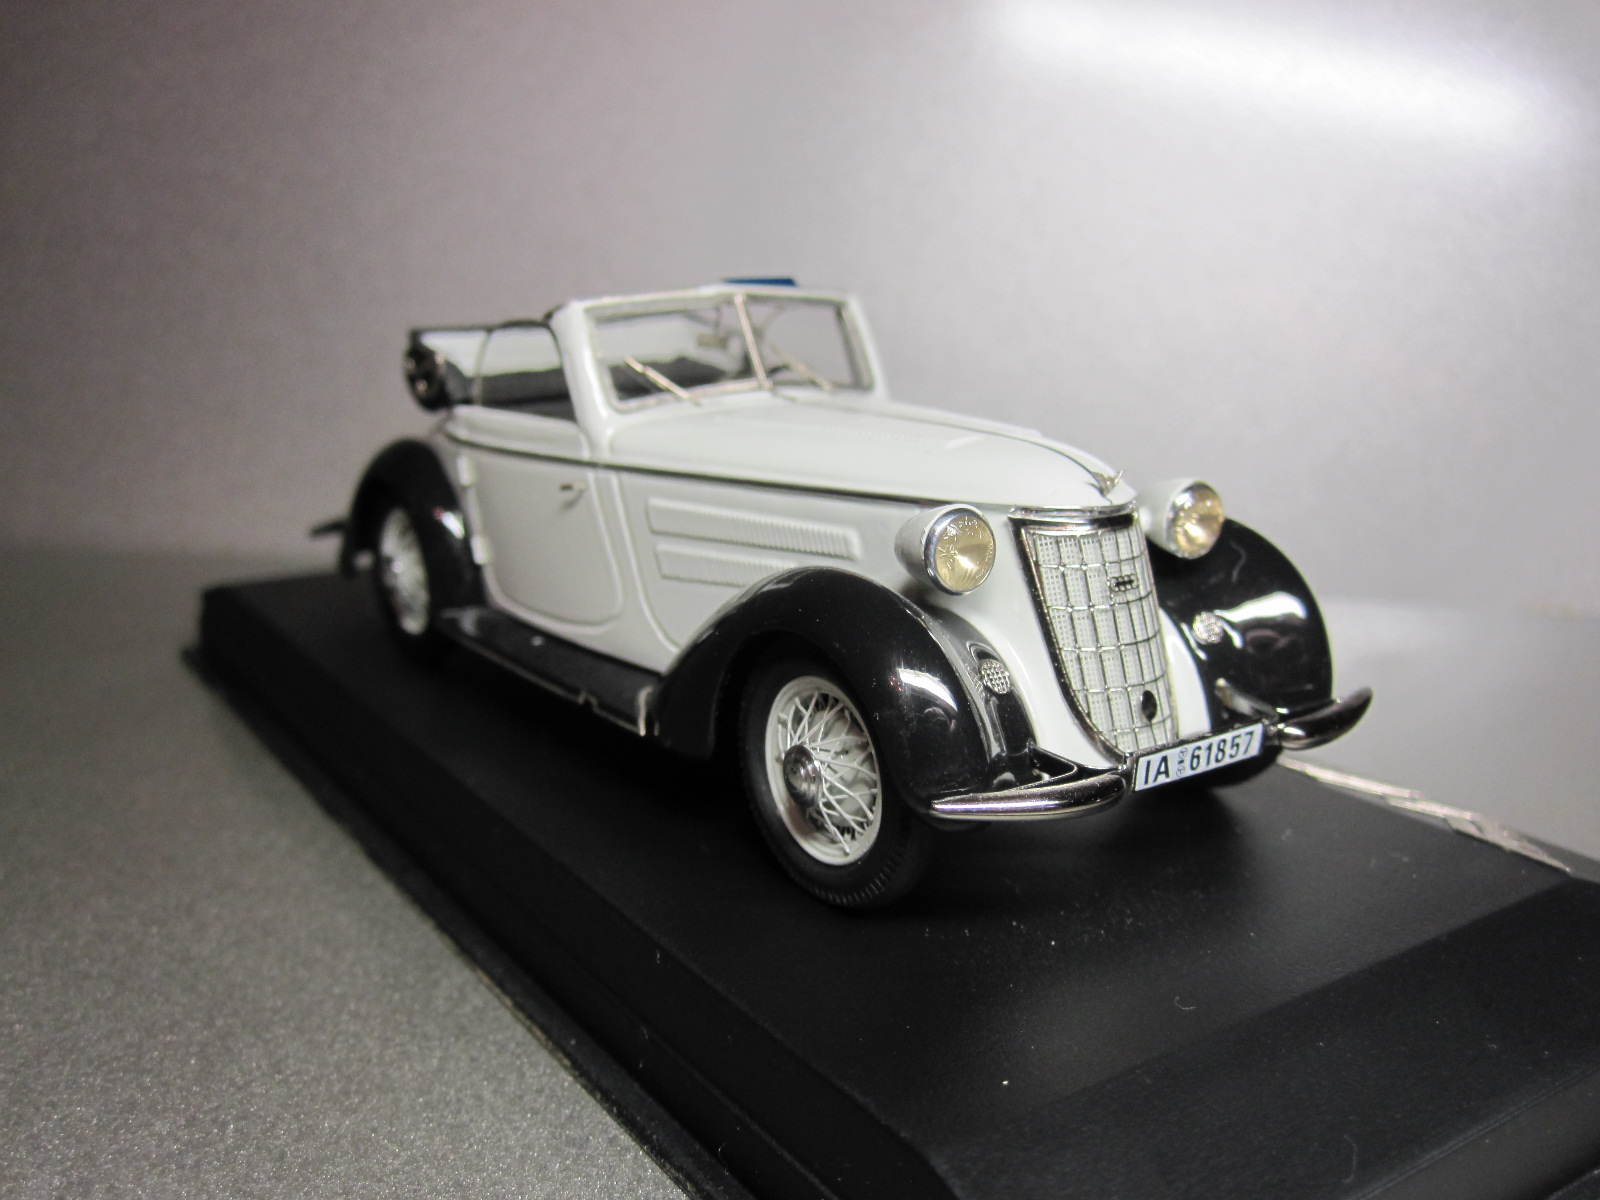 ZZ Model: 1936 Wanderer W 25K Cabriolet White-Black (70/100) in 1:43 scale . Picture provided by Aleksandr (Desdemona), 2010-06-08 15:01:26